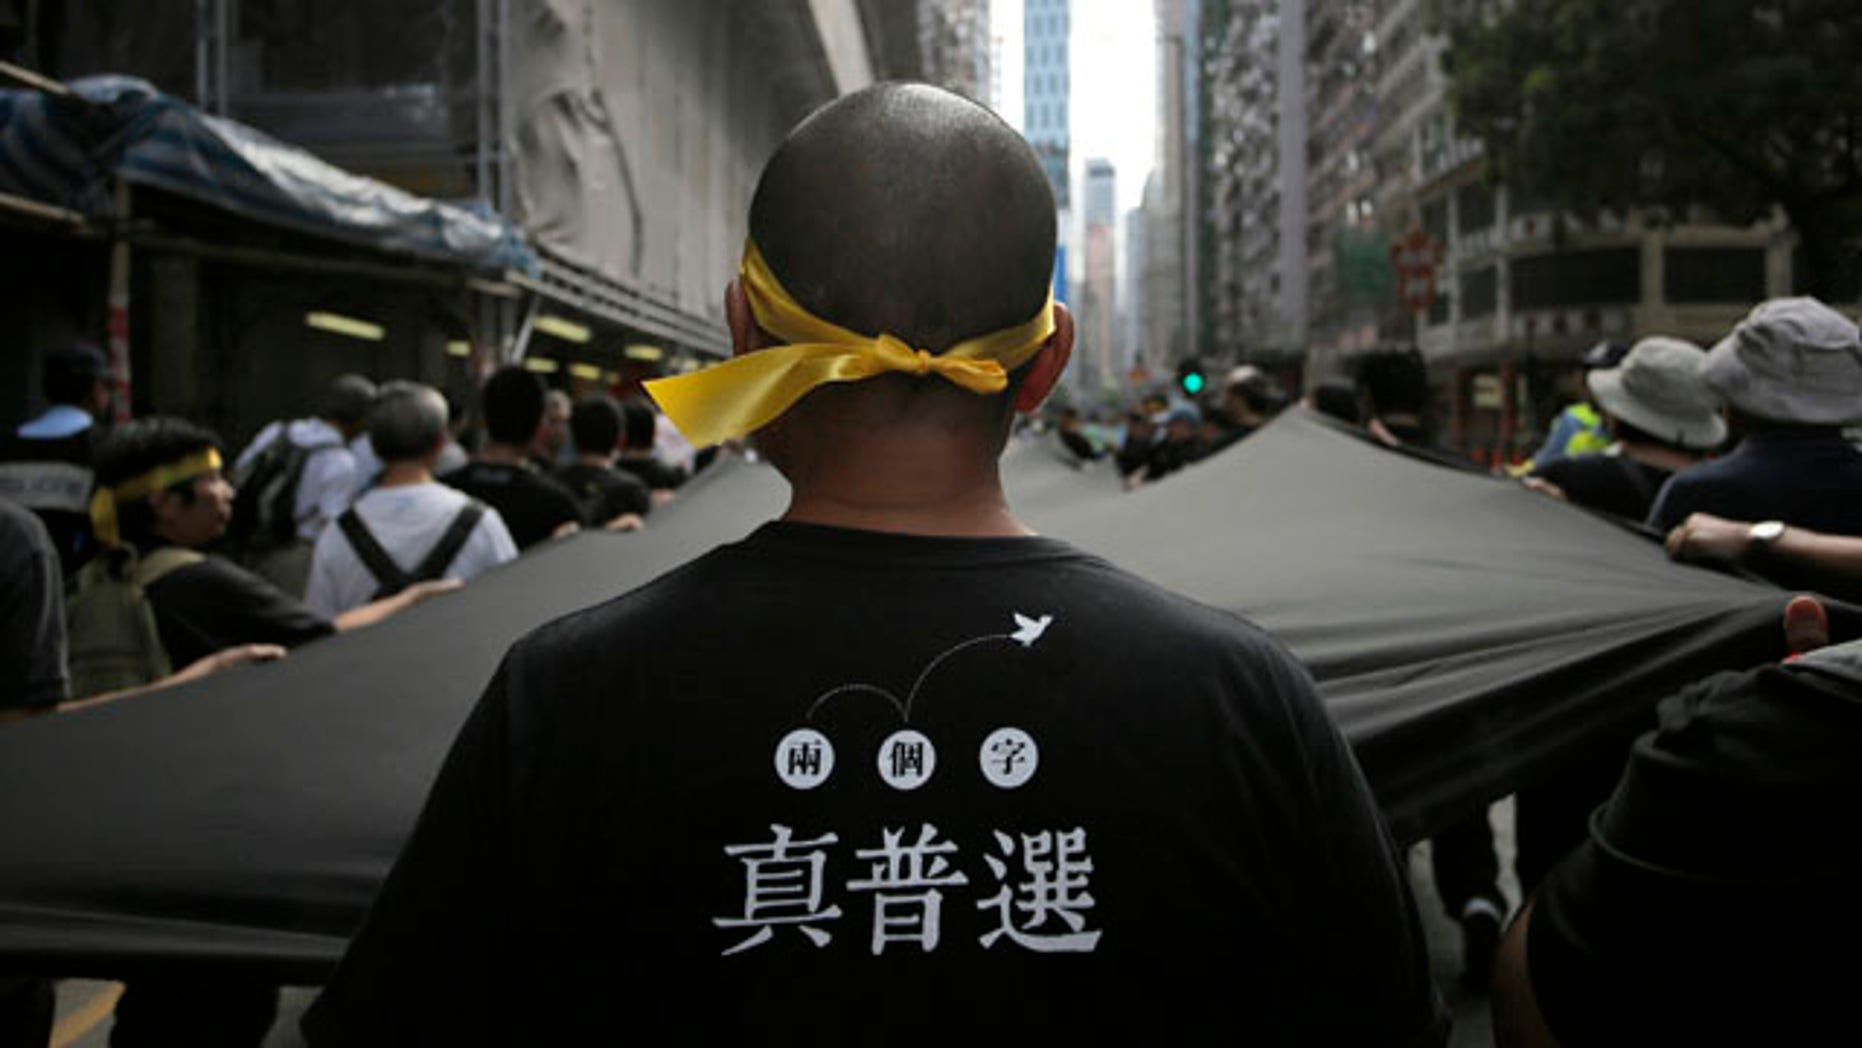 September 14, 2014: A protester stretches out a 500 meter long black cloth during a rally in a downtown street in Hong Kong.  The Chinese words on the T-shirt read 'Real Universal Suffrage'. (AP Photo/Vincent Yu)